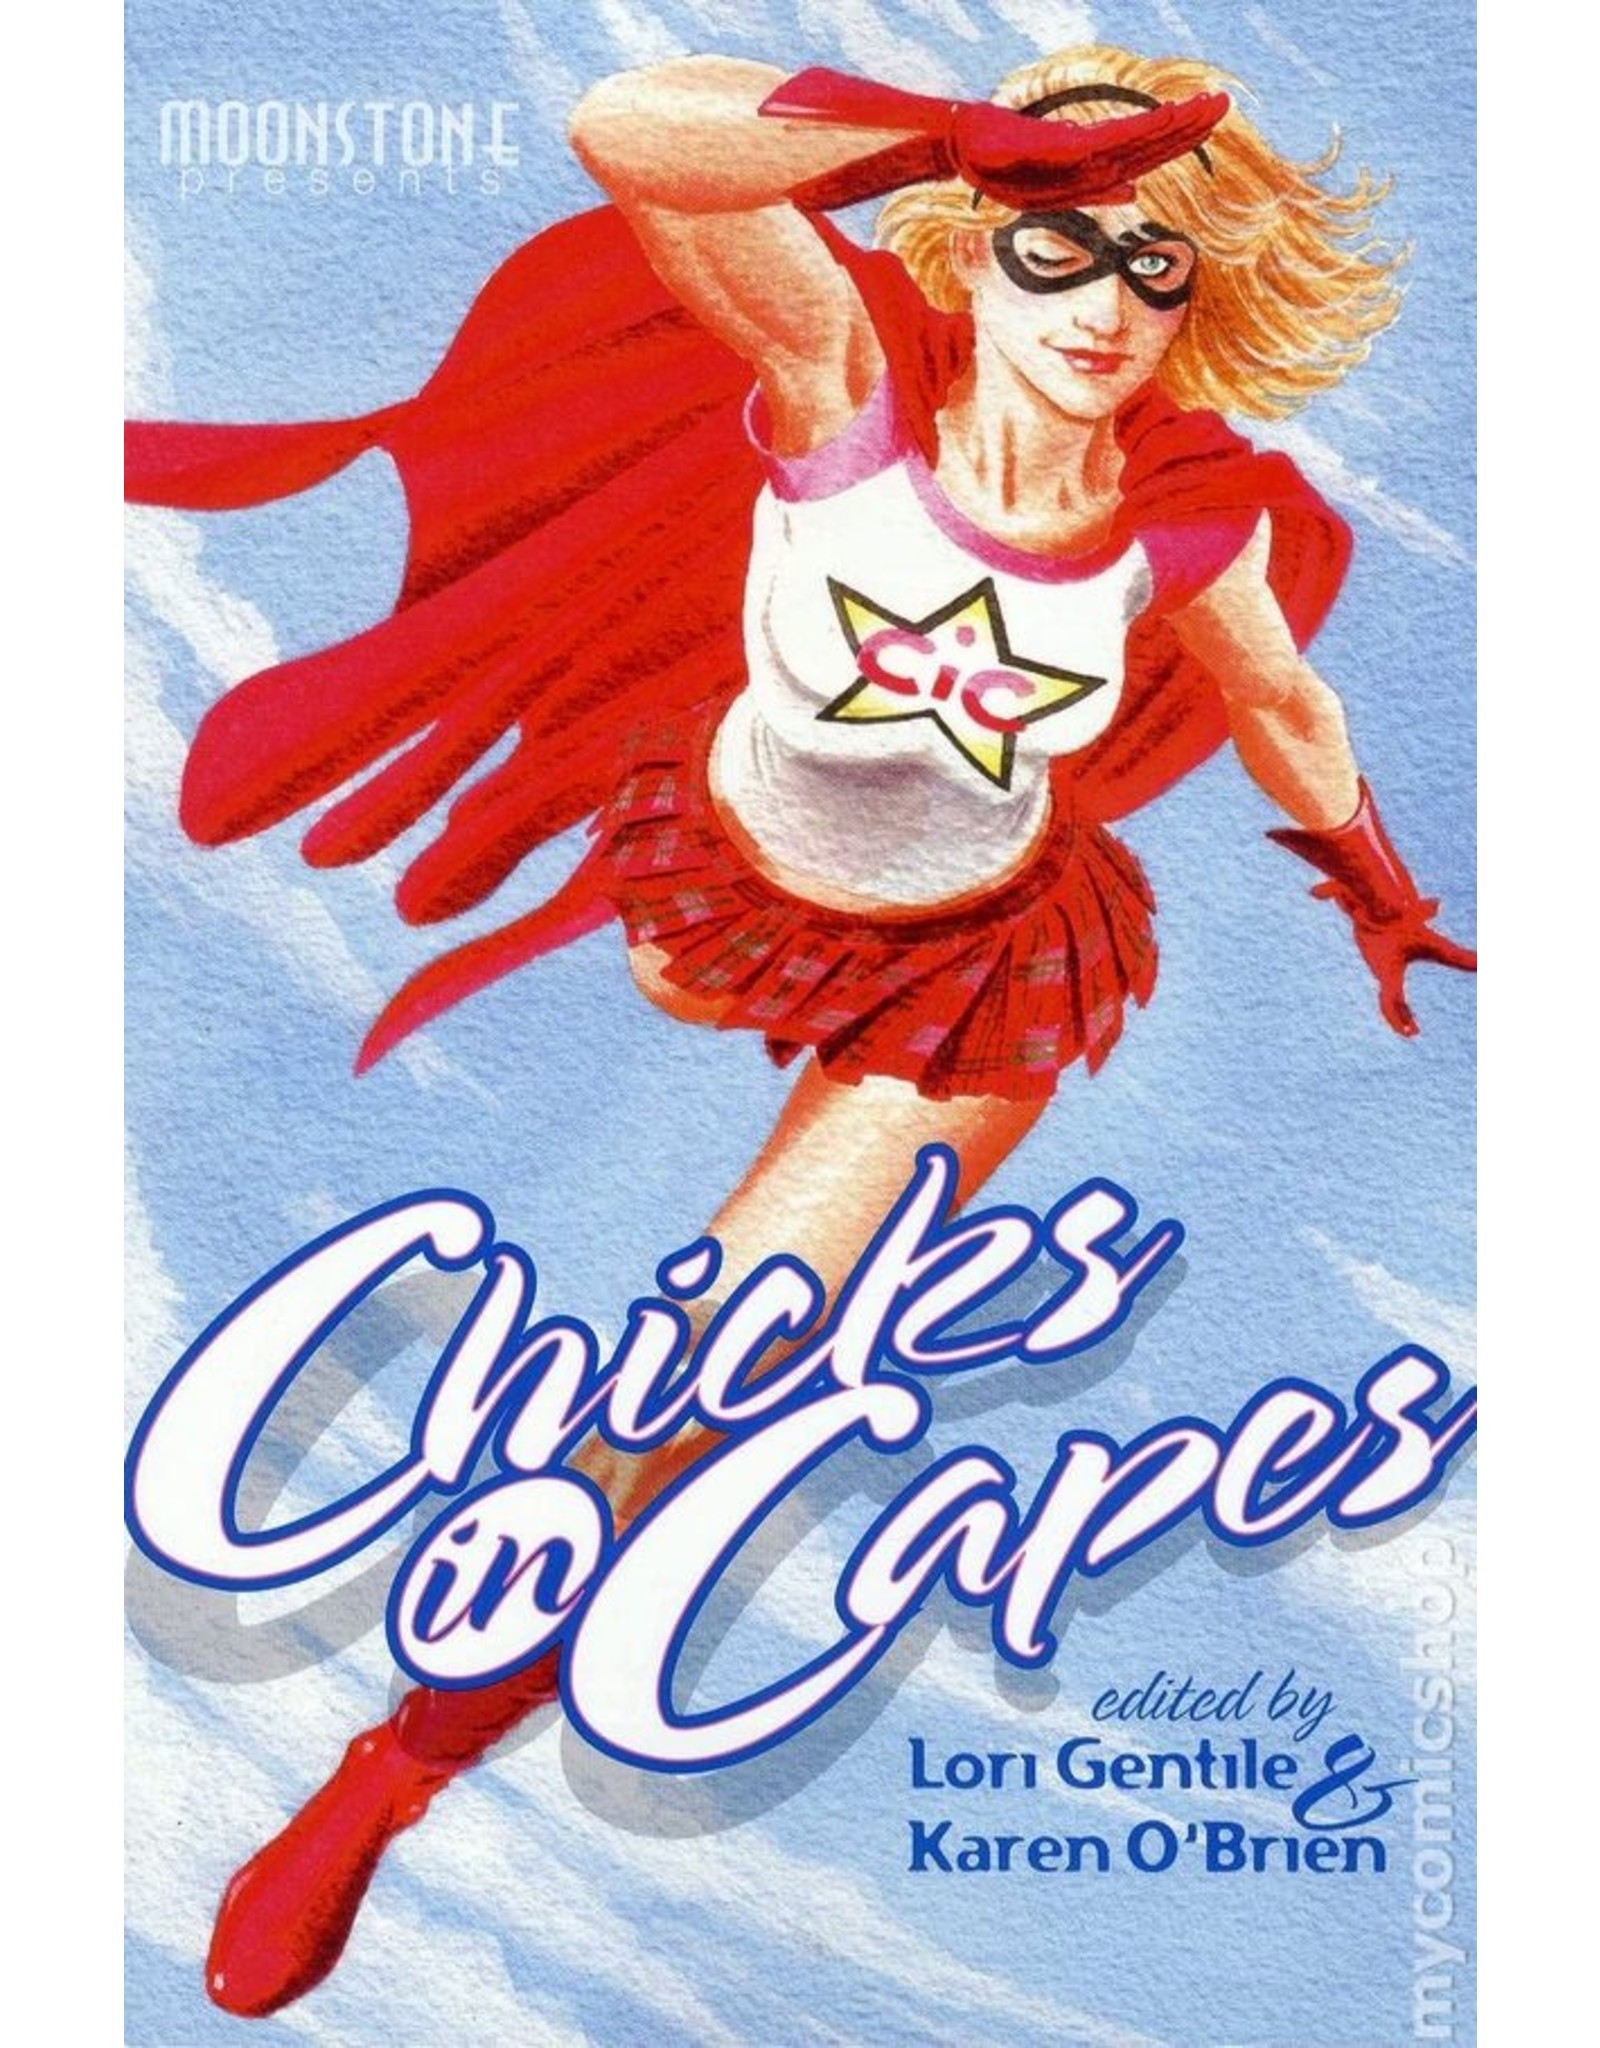 MOONSTONE CHICKS IN CAPES SC BOOK MARKET ED